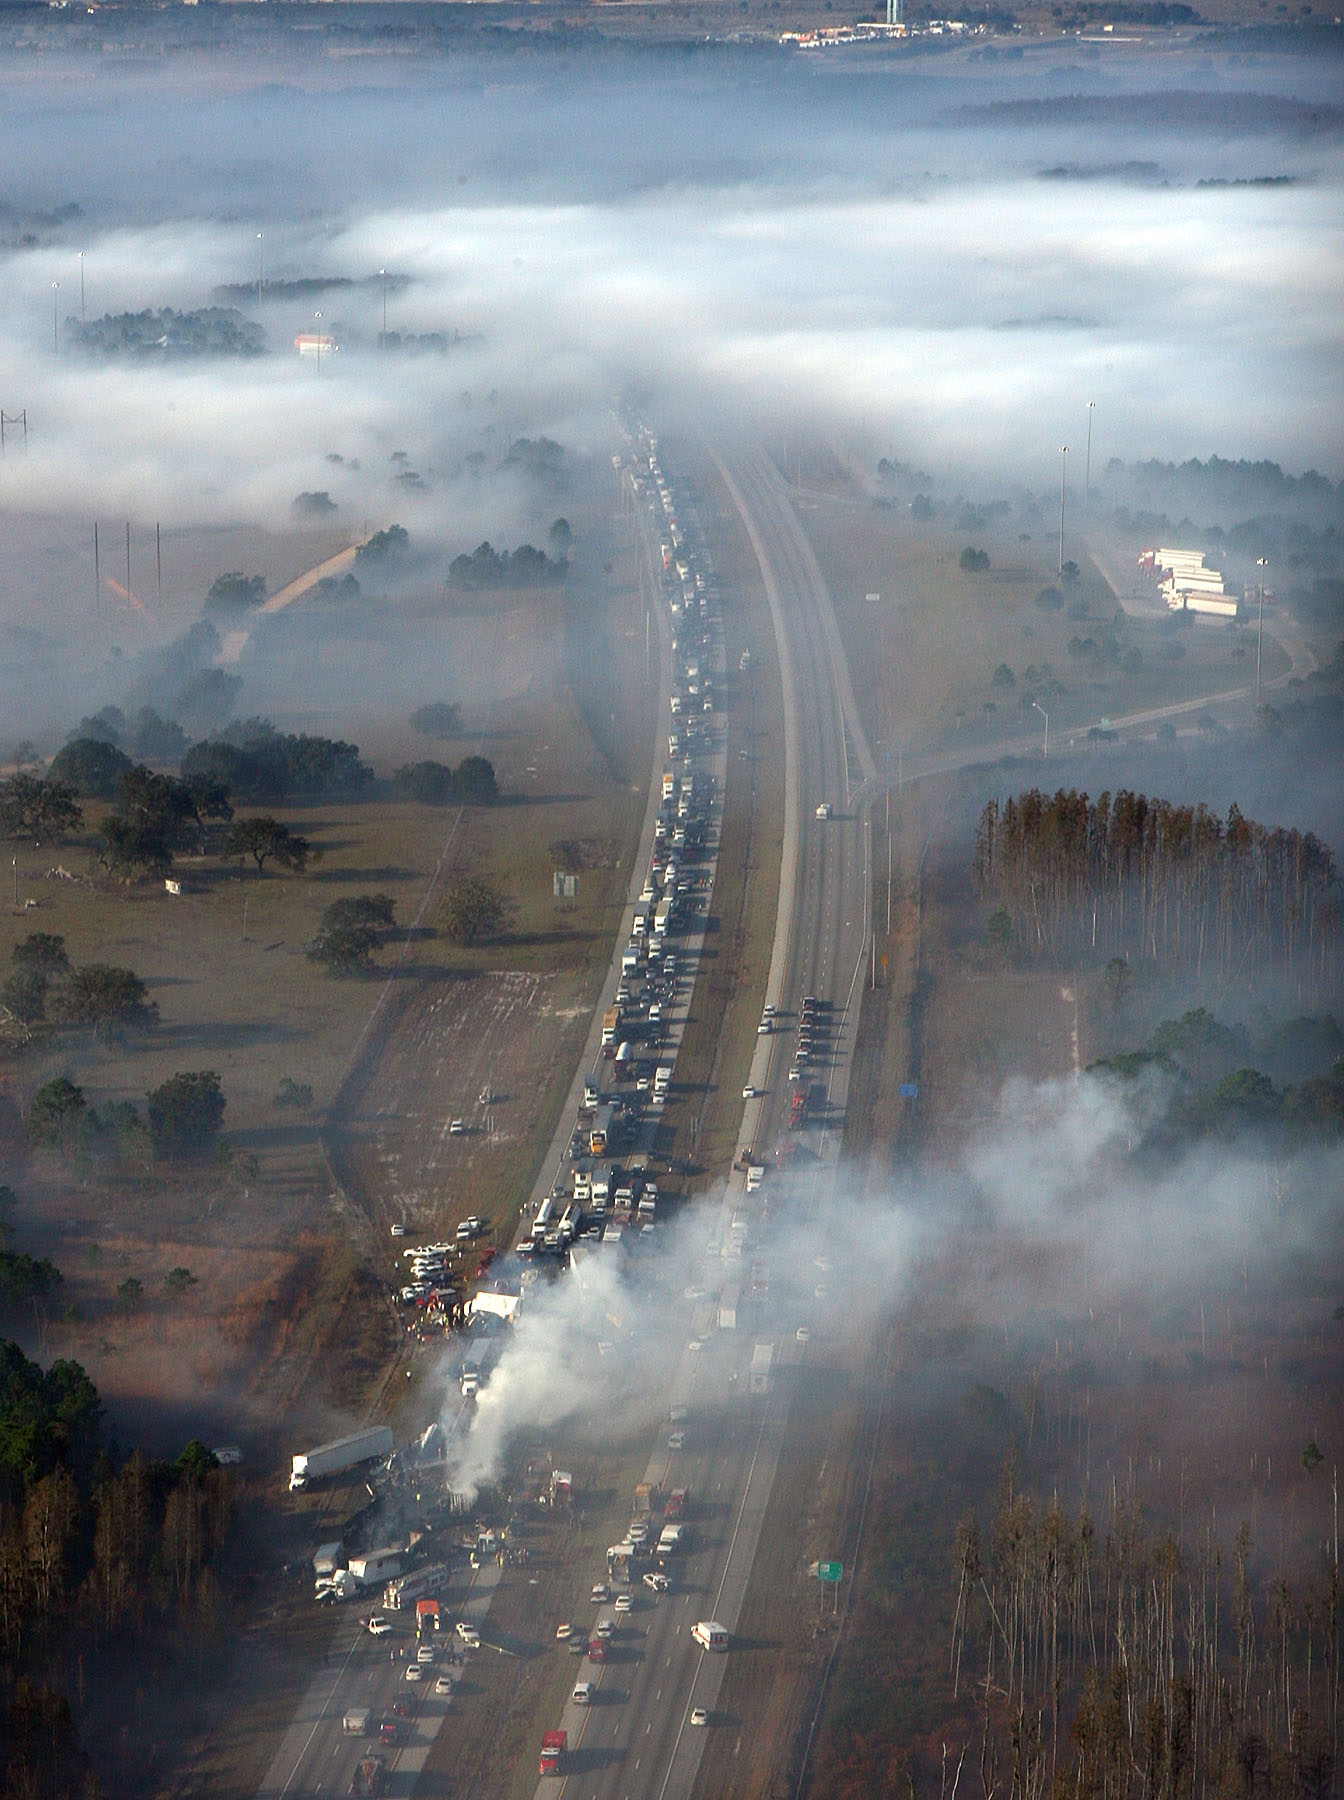 An image of a massive car accident caused by a superfog